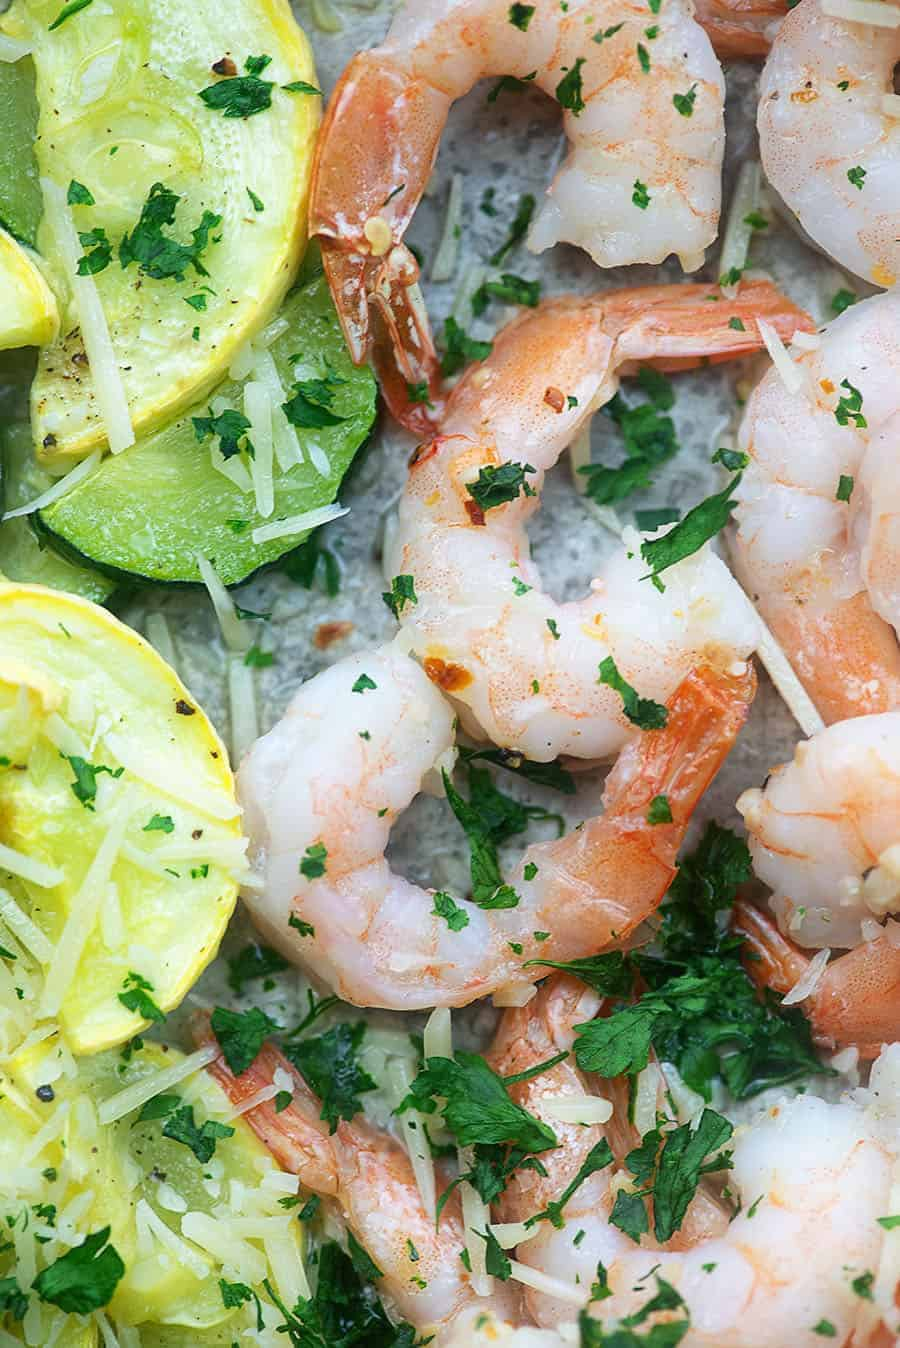 Keto shrimp scampi baked on a sheet pan! This low carb dinner is ready in less than 30 minutes! #lchf #keto #shrimp